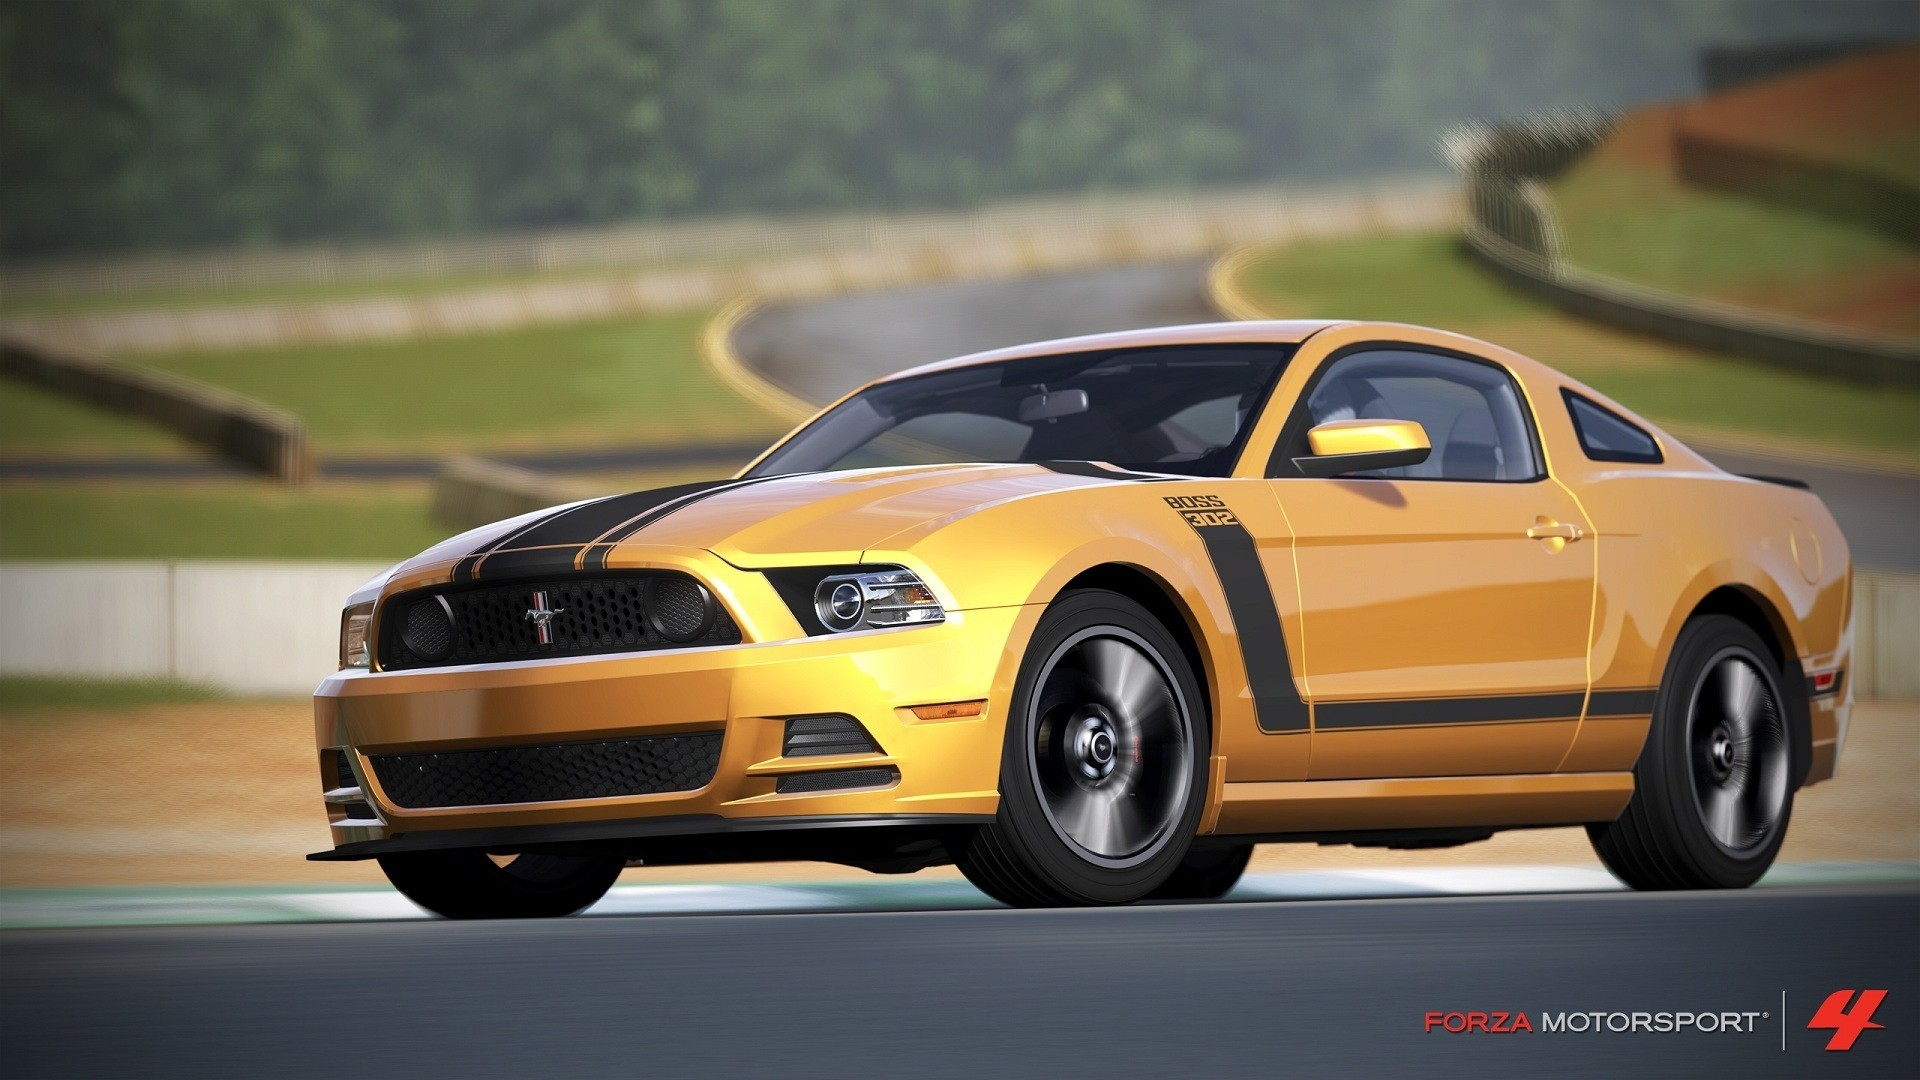 Forza Motorsport 4/August Playseat Car Pack